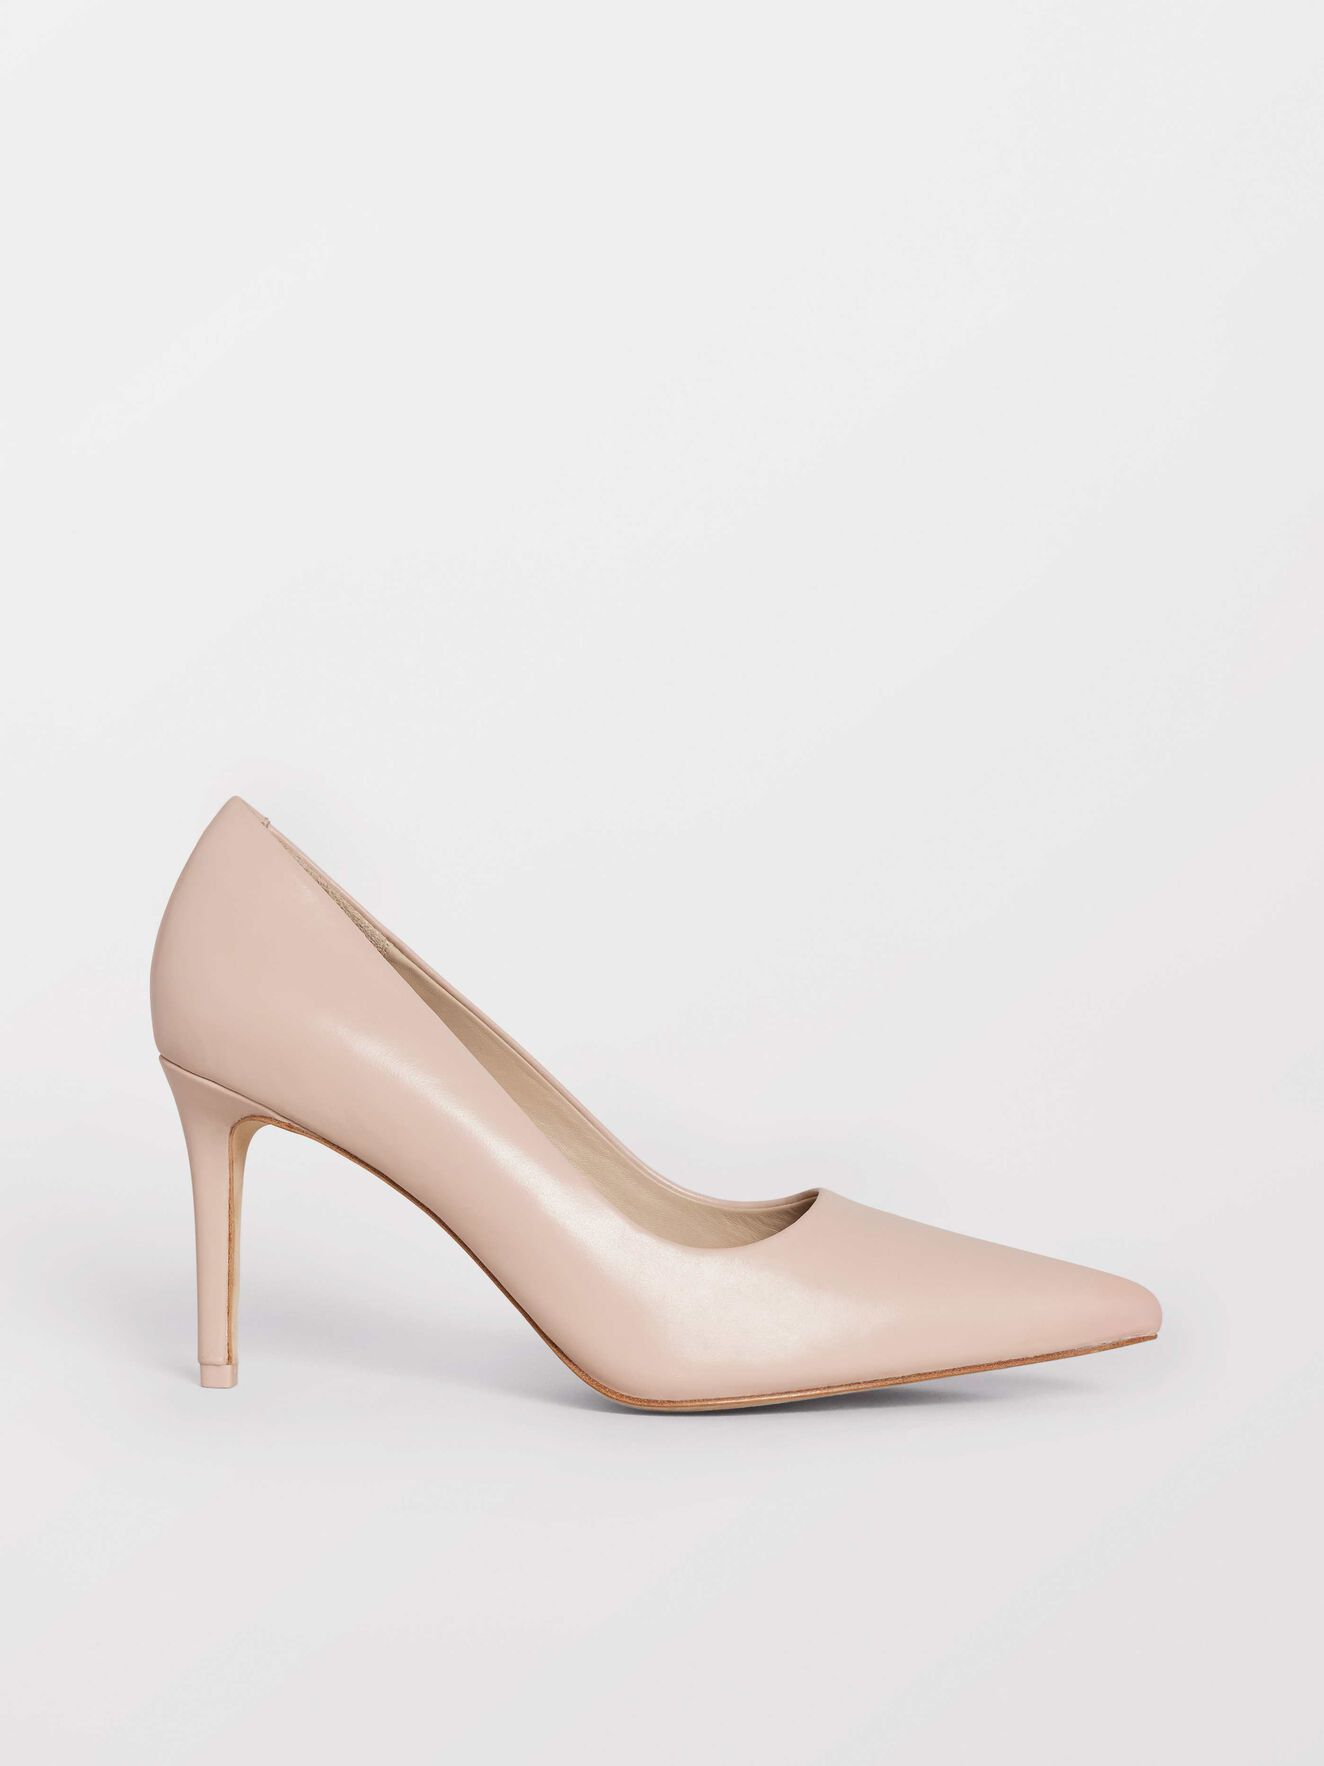 Xero Pumps in Nude Pink from Tiger of Sweden